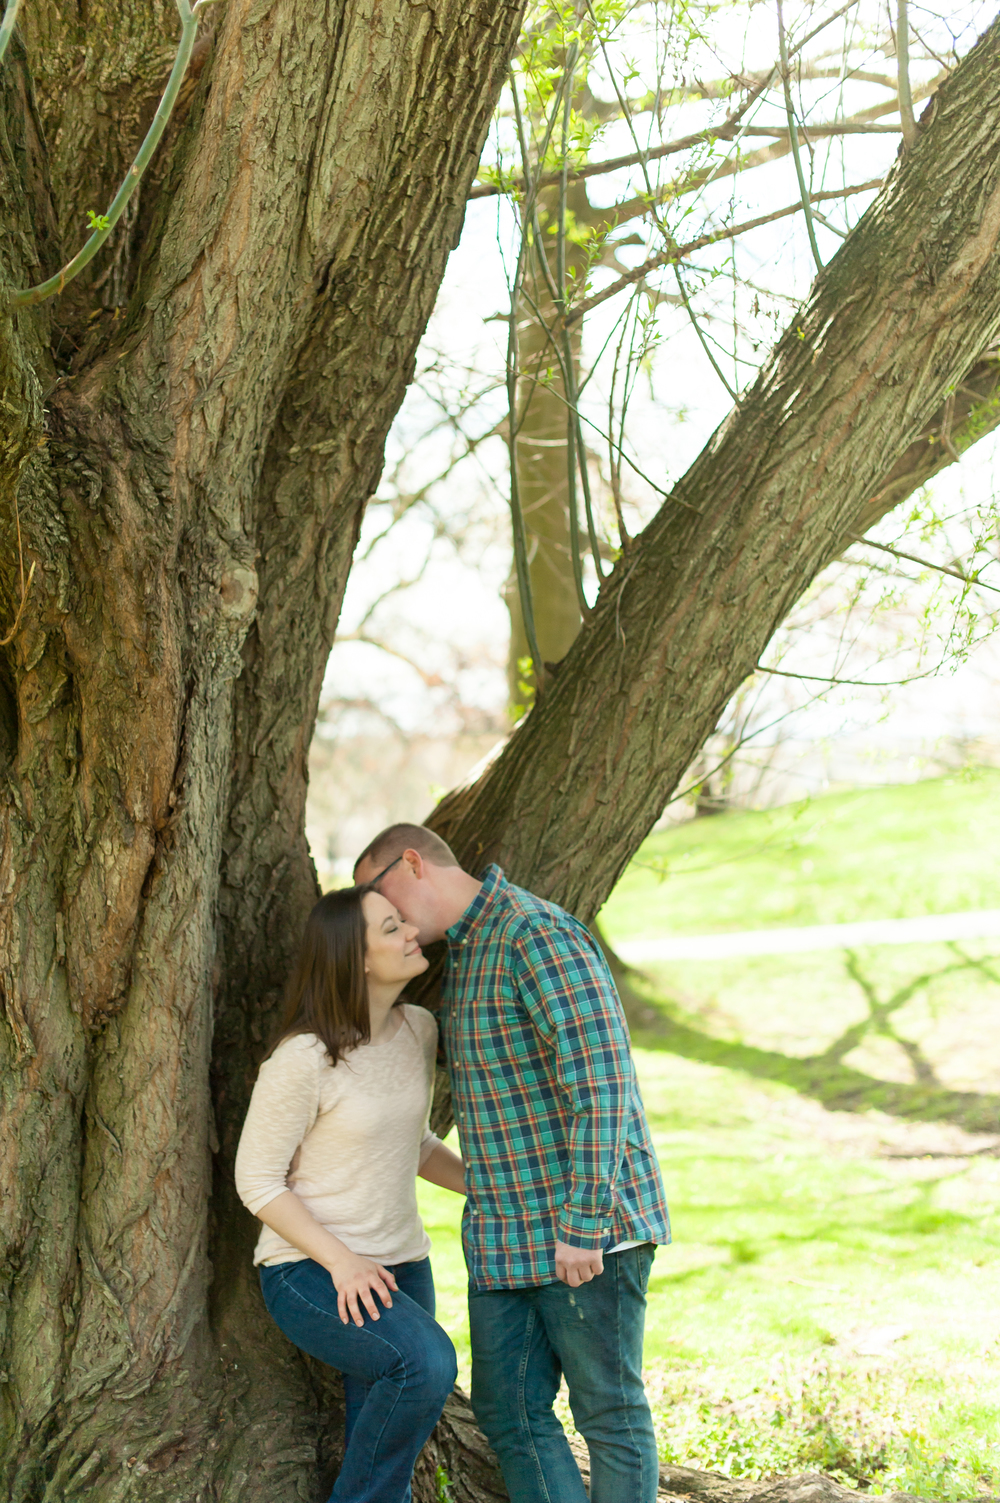 Kate and Will Engagement-46-2.JPG